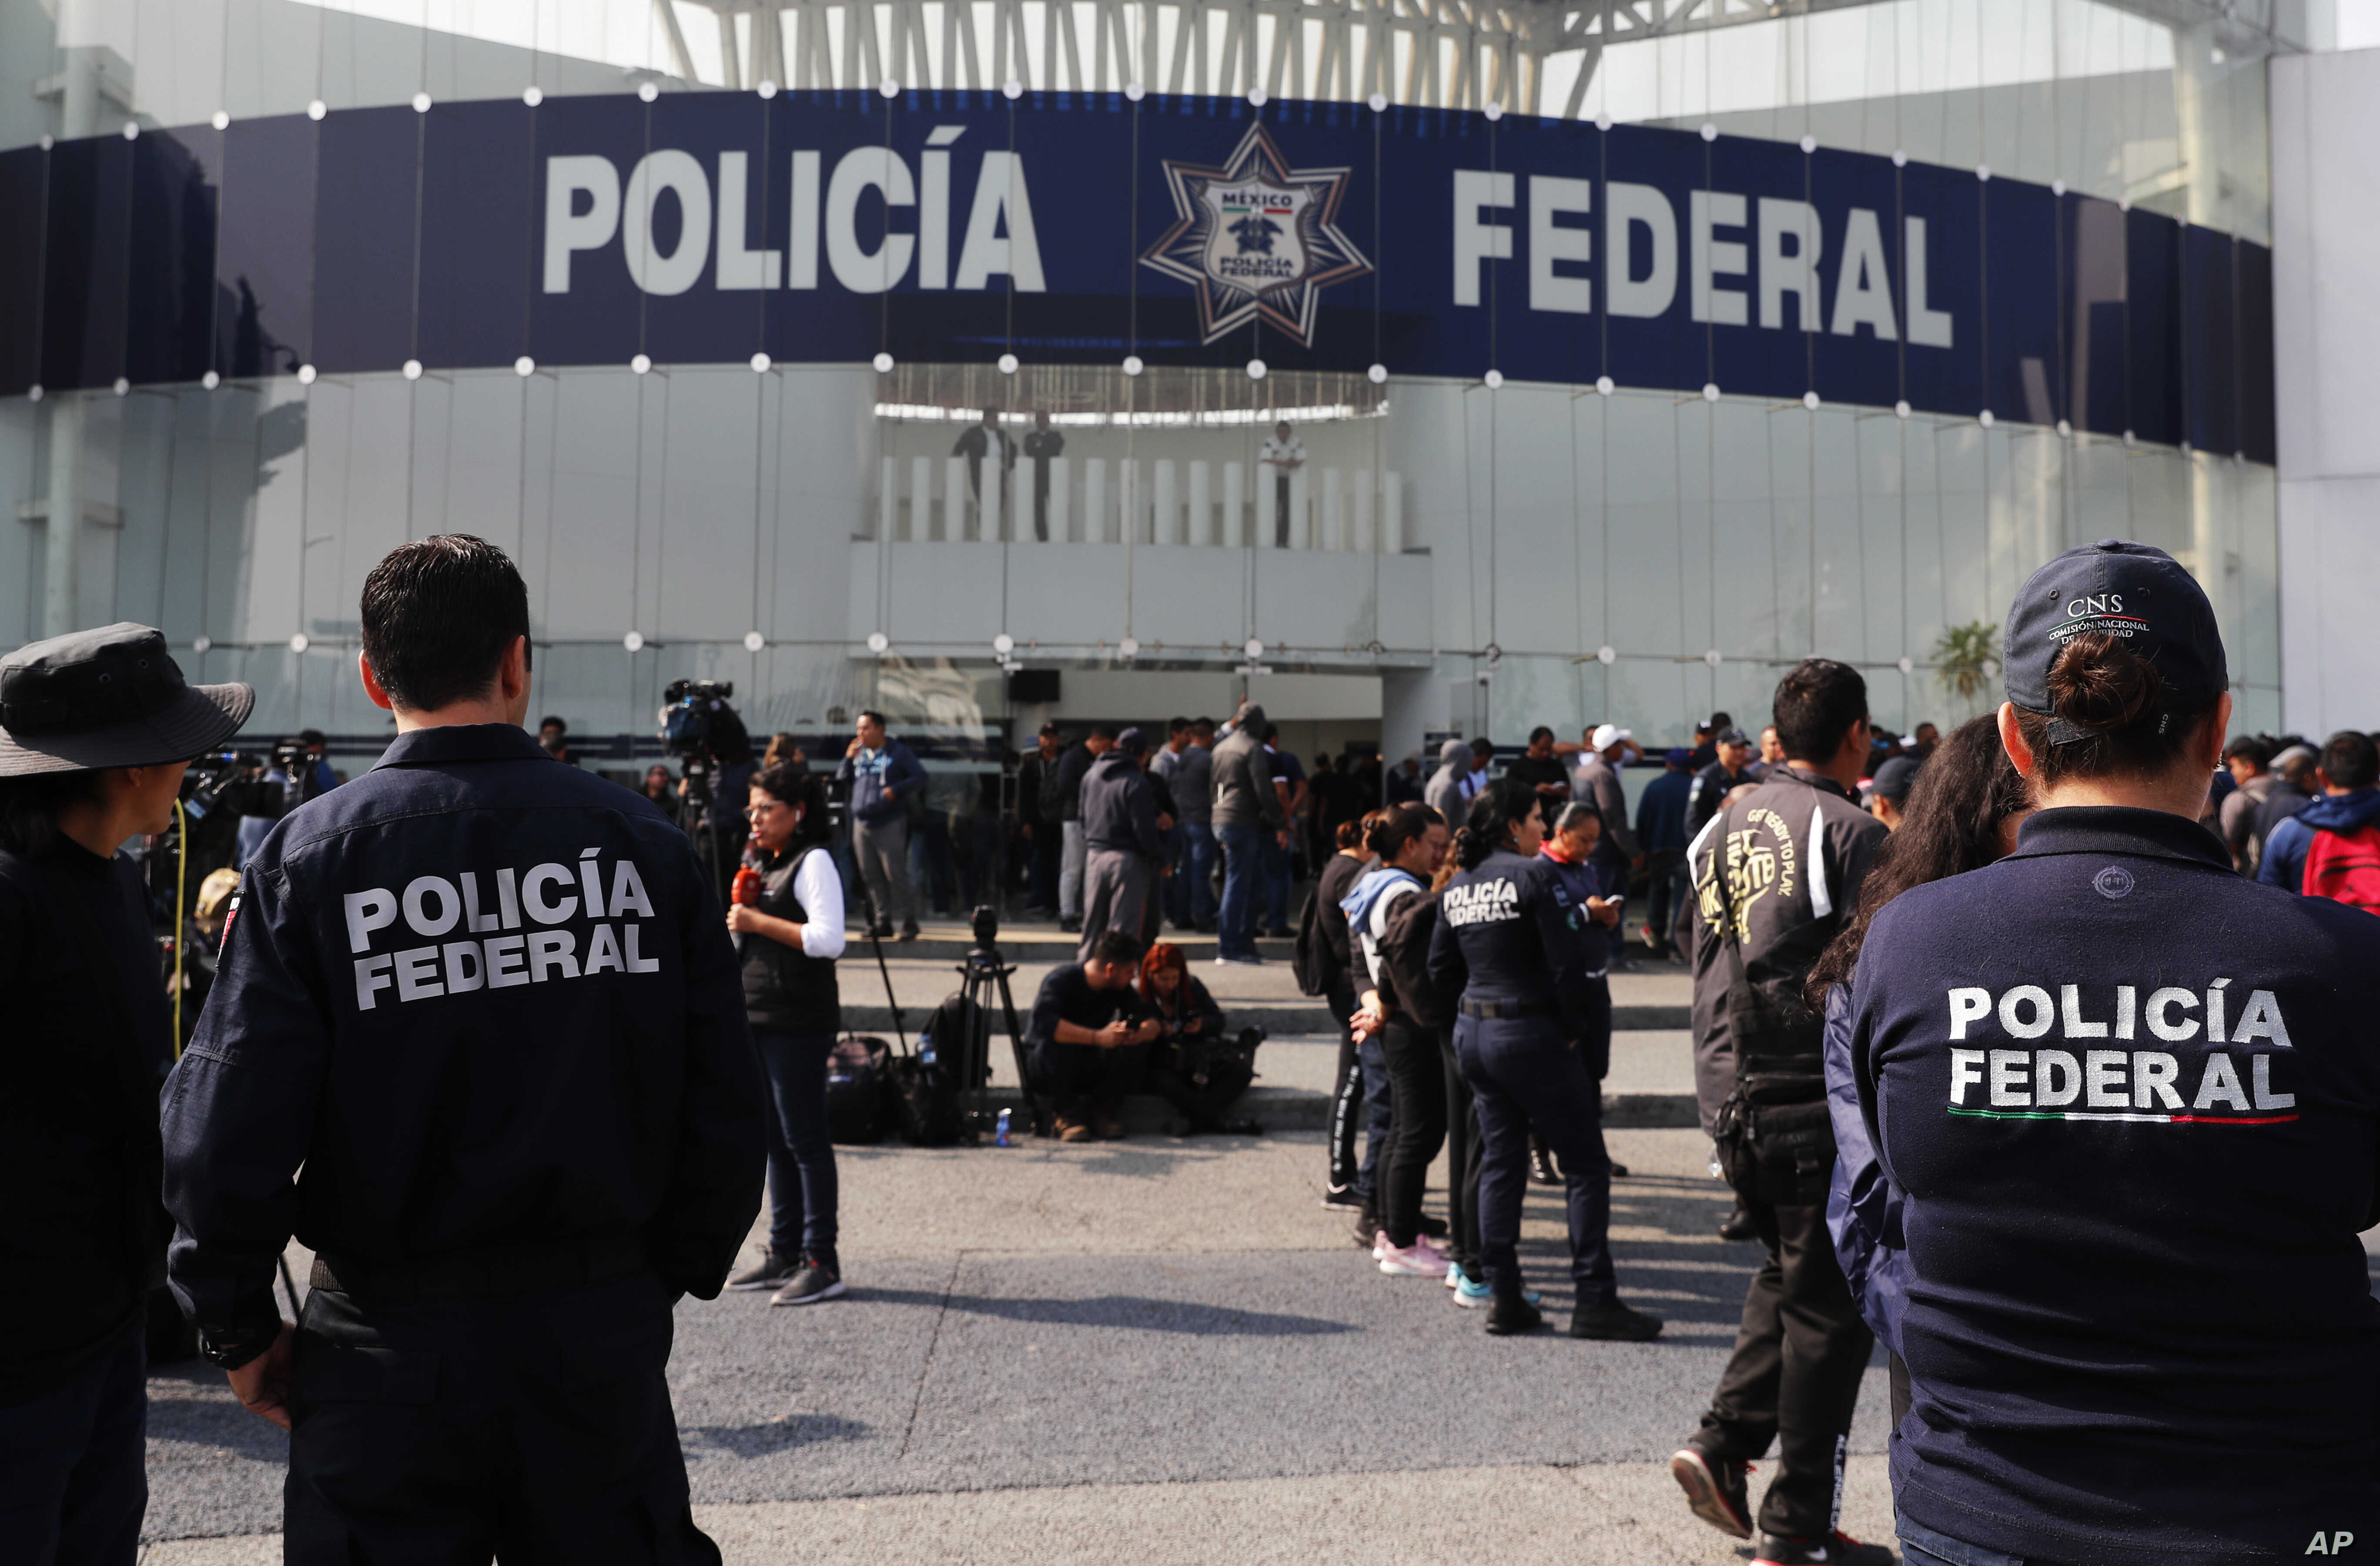 Striking police continue to hold a federal police command center in the Iztapalapa borough, in Mexico City, July 4, 2019, to protest against plans to force them into the newly formed National Guard.